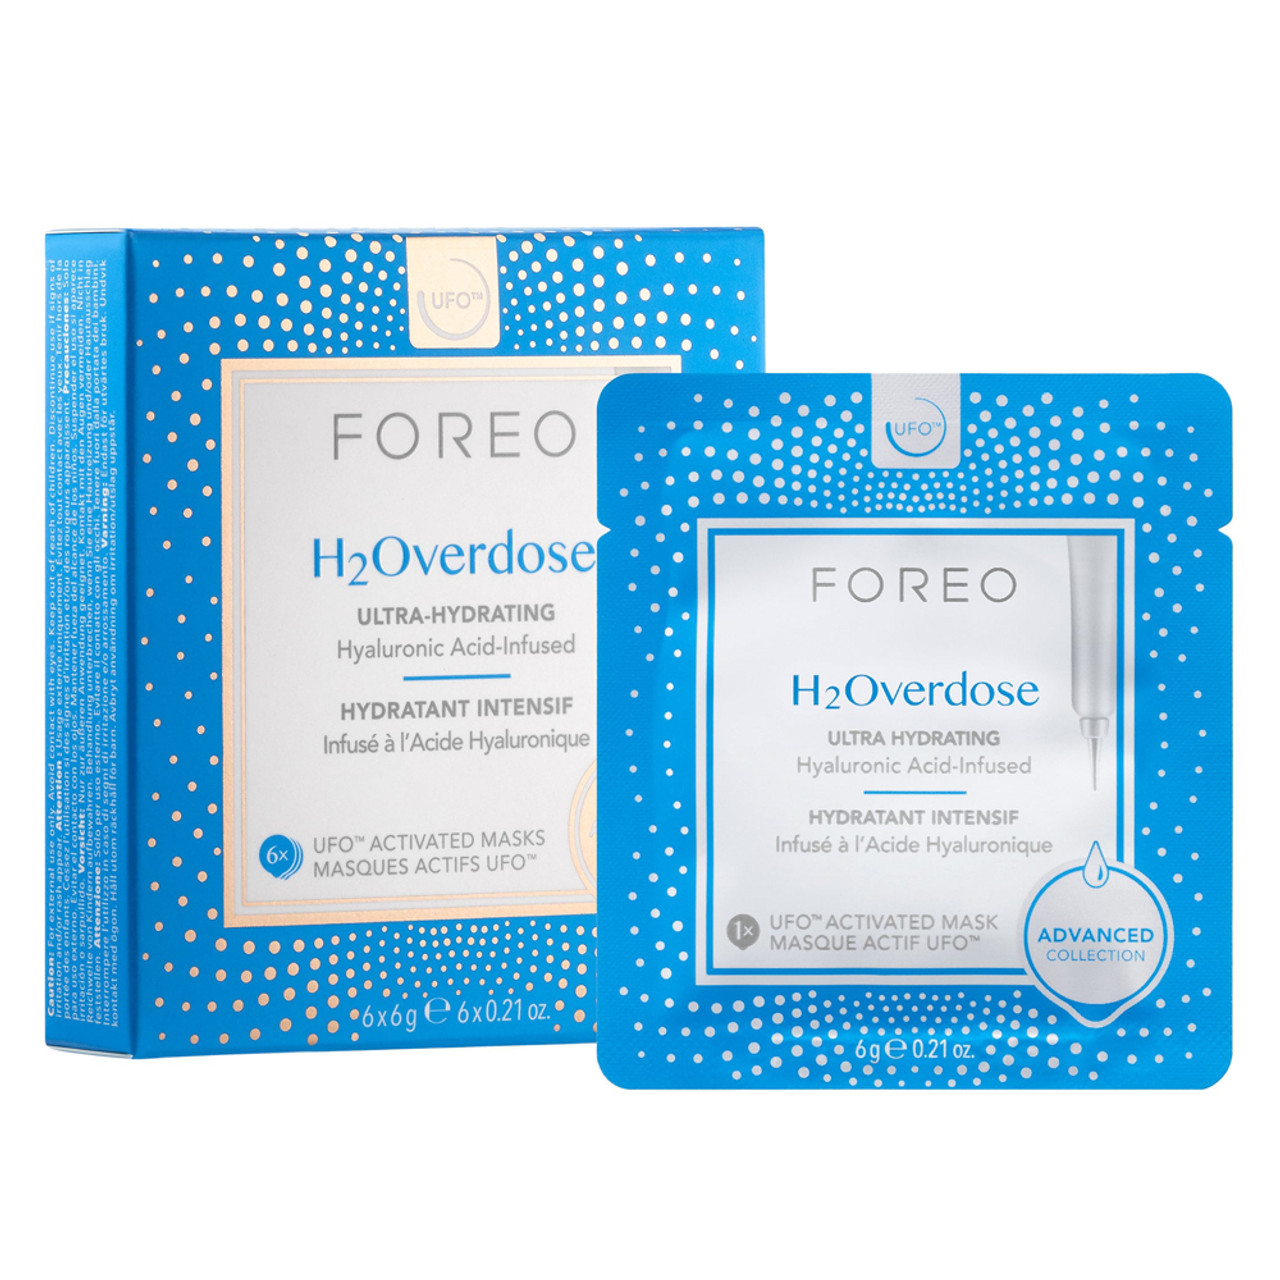 Foreo UFO Activated Masks - H2Overdose (6-Pk)